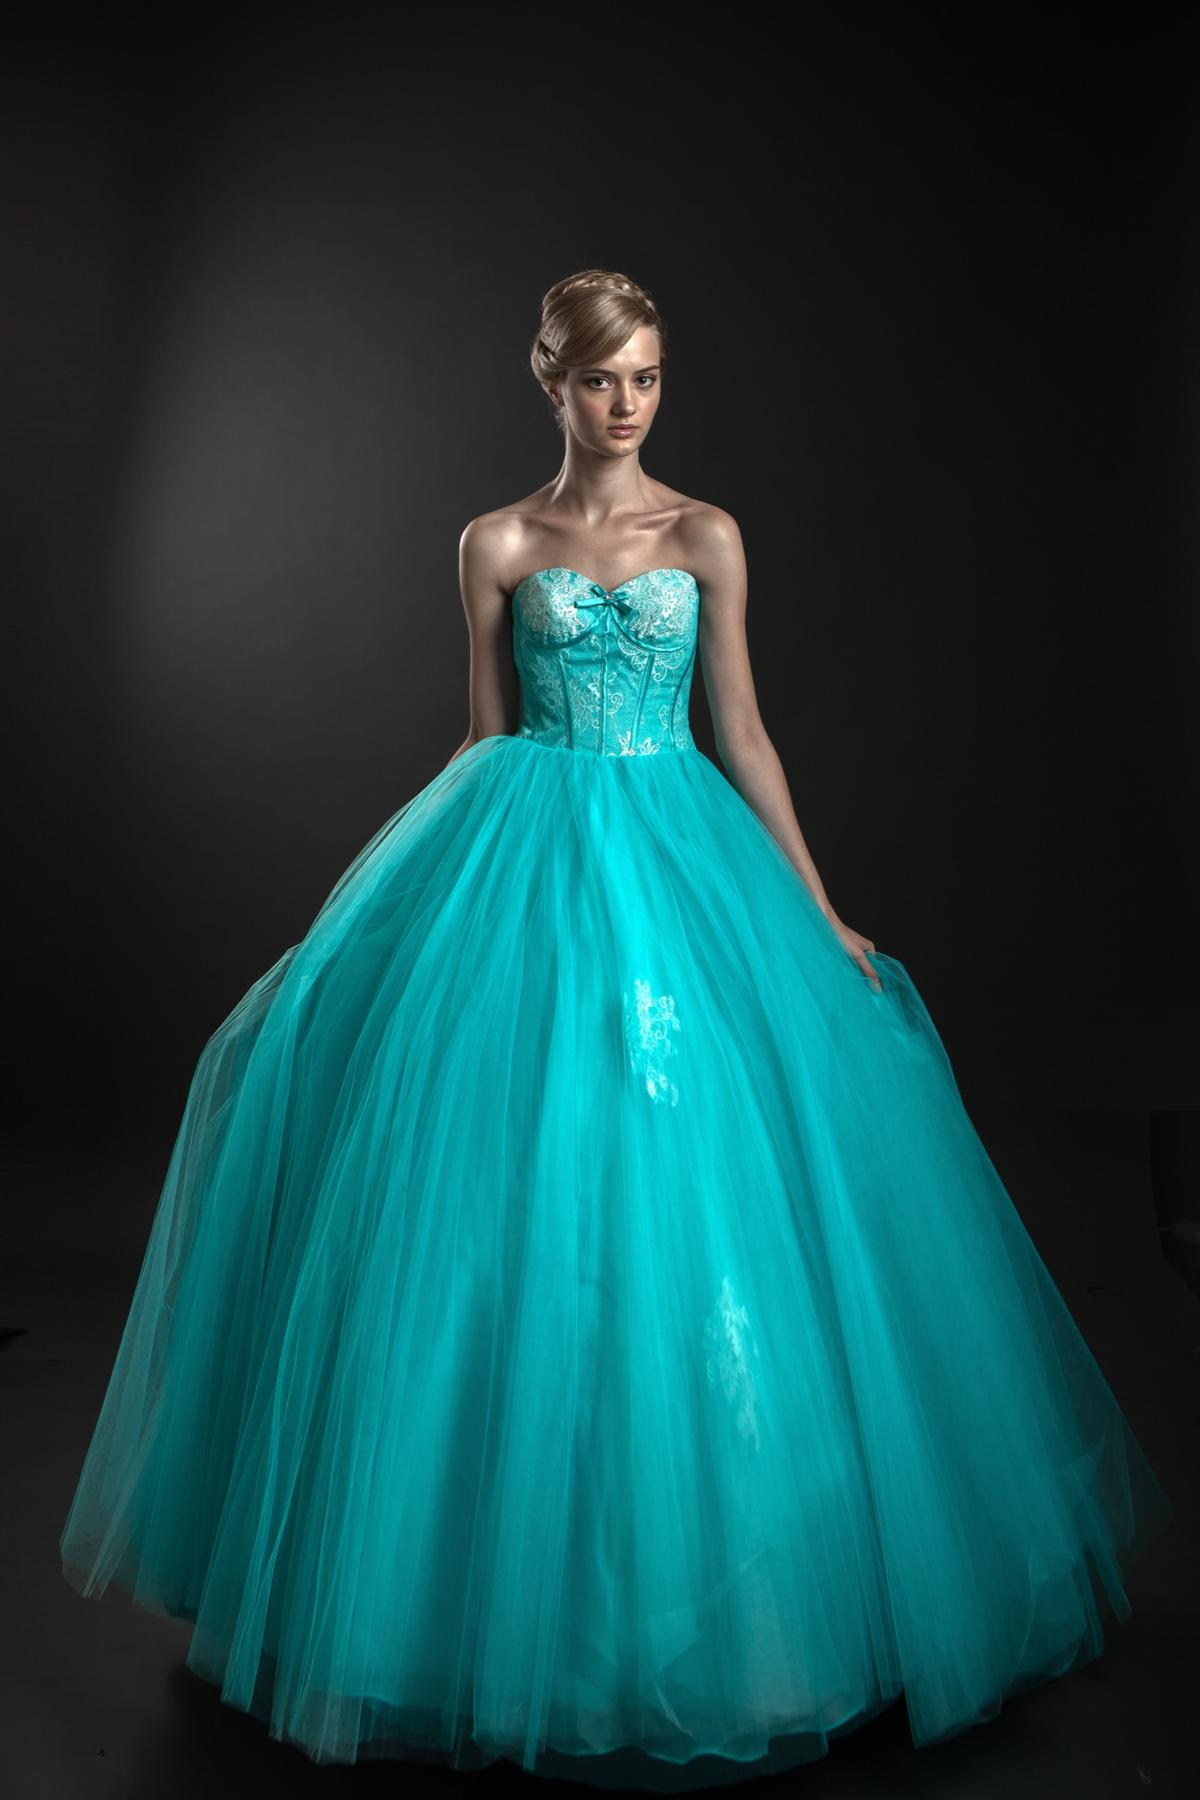 http://www.pwimages.com/images/perfectbride/fe9fa7b5439d5207483c7be84d48f886-IMG_5226.jpg